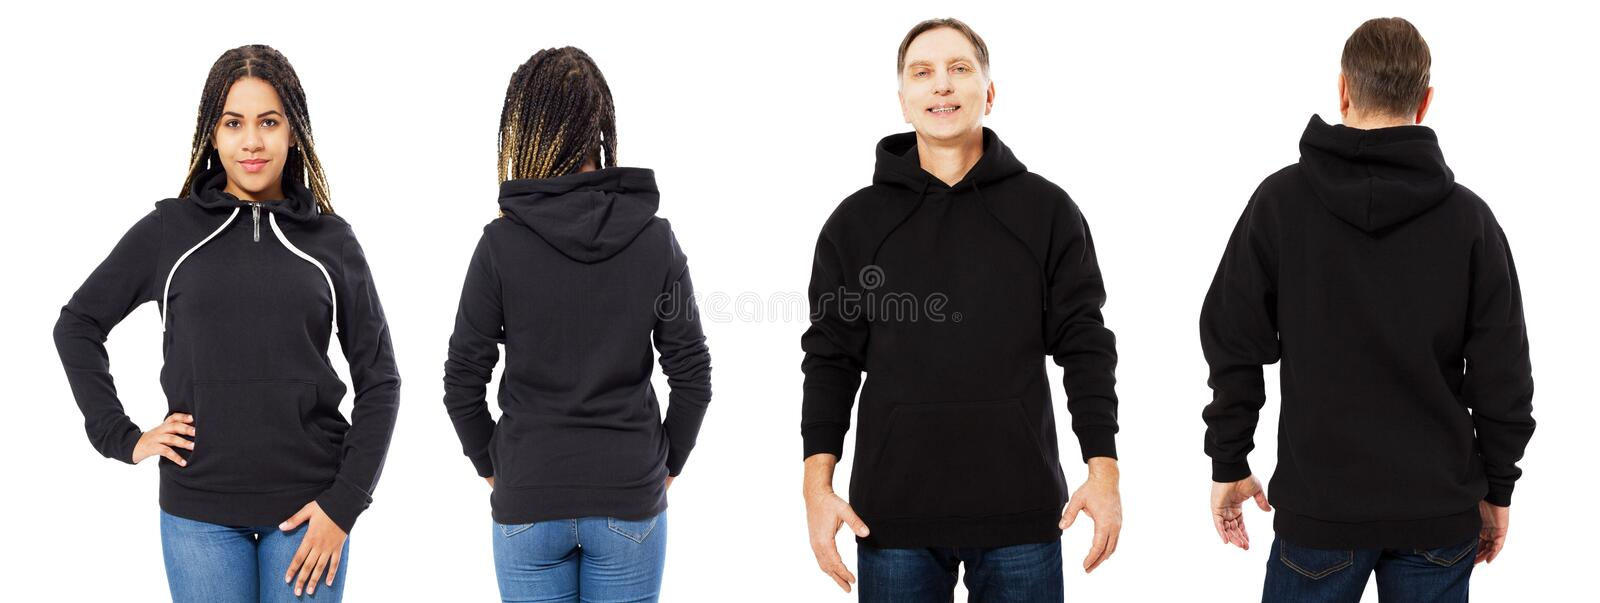 Black beautiful woman and middle-aged man in black hoodie mock up isolated over white background stock image